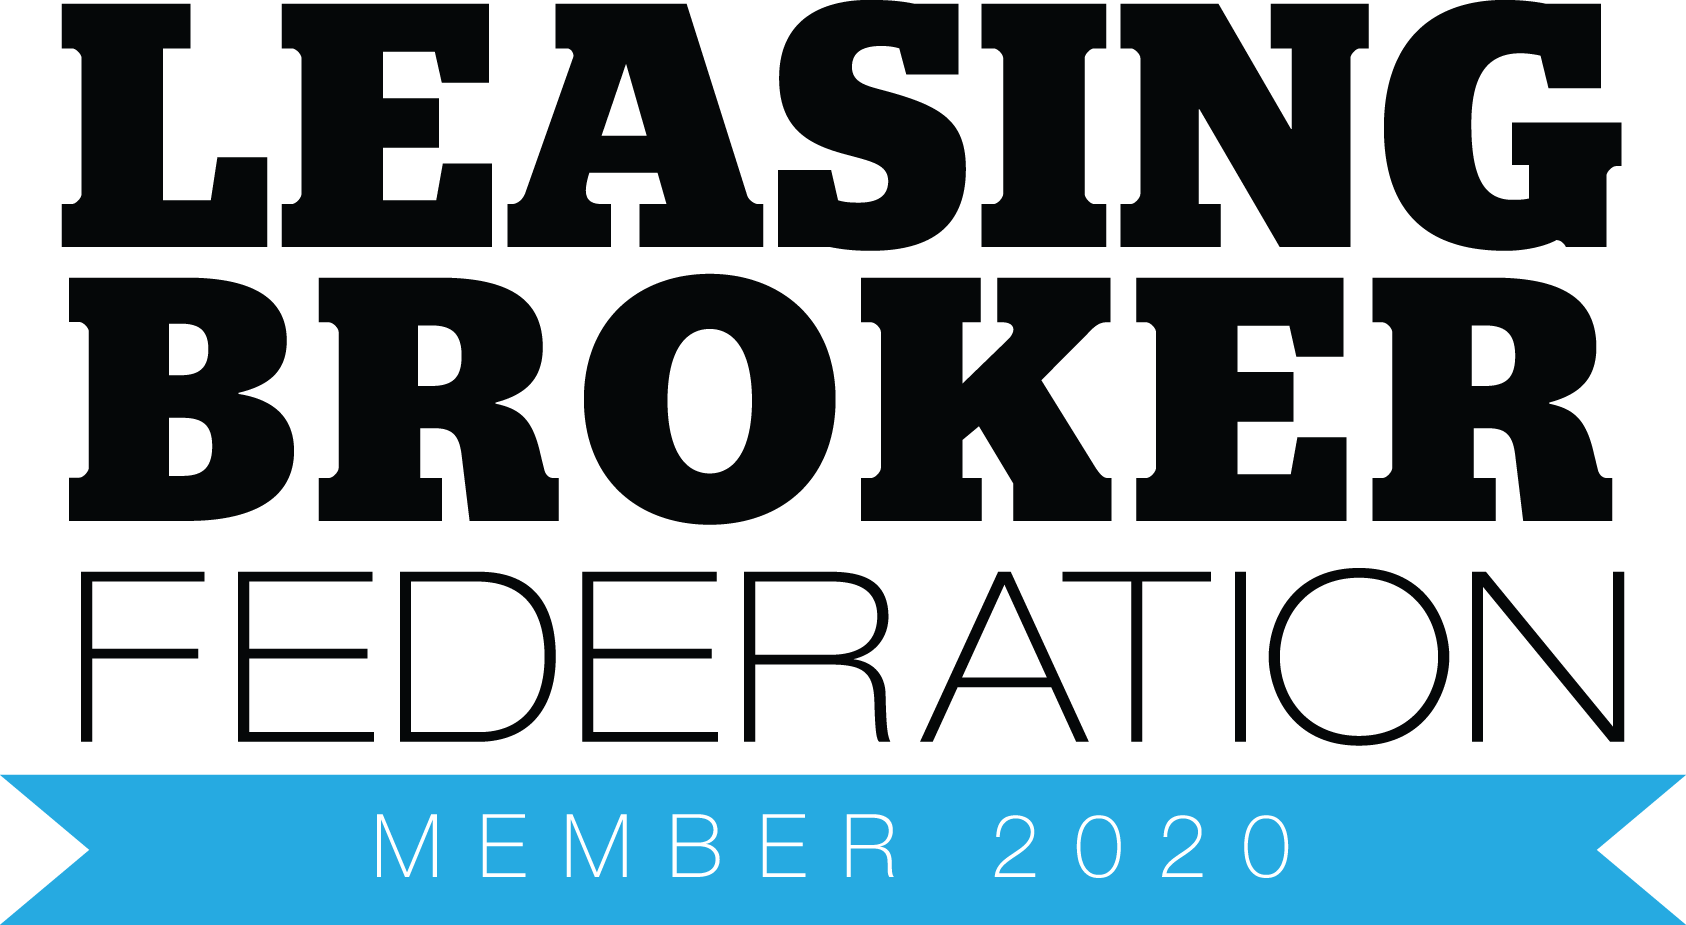 Leasing broker federation member 2020